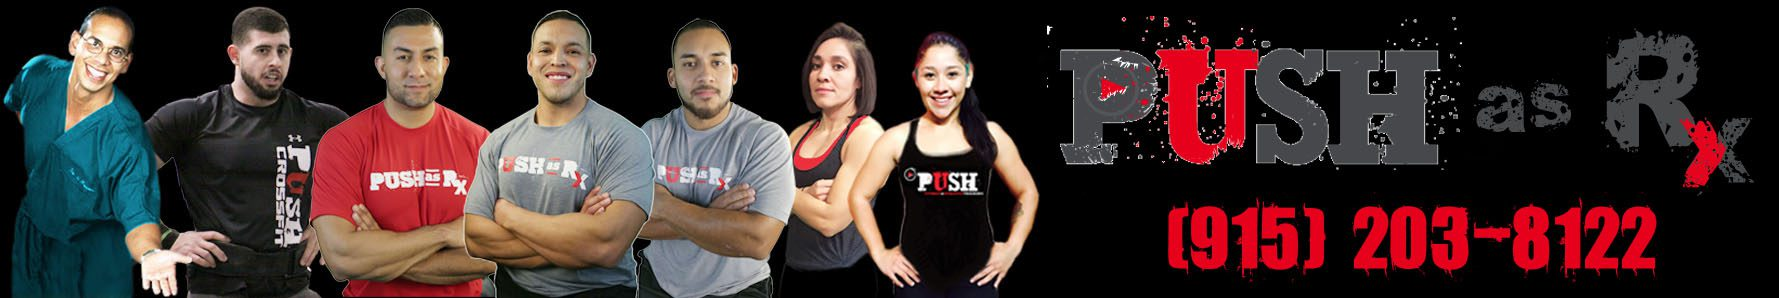 PushAsRx Athletic Training Centers El Paso, TX